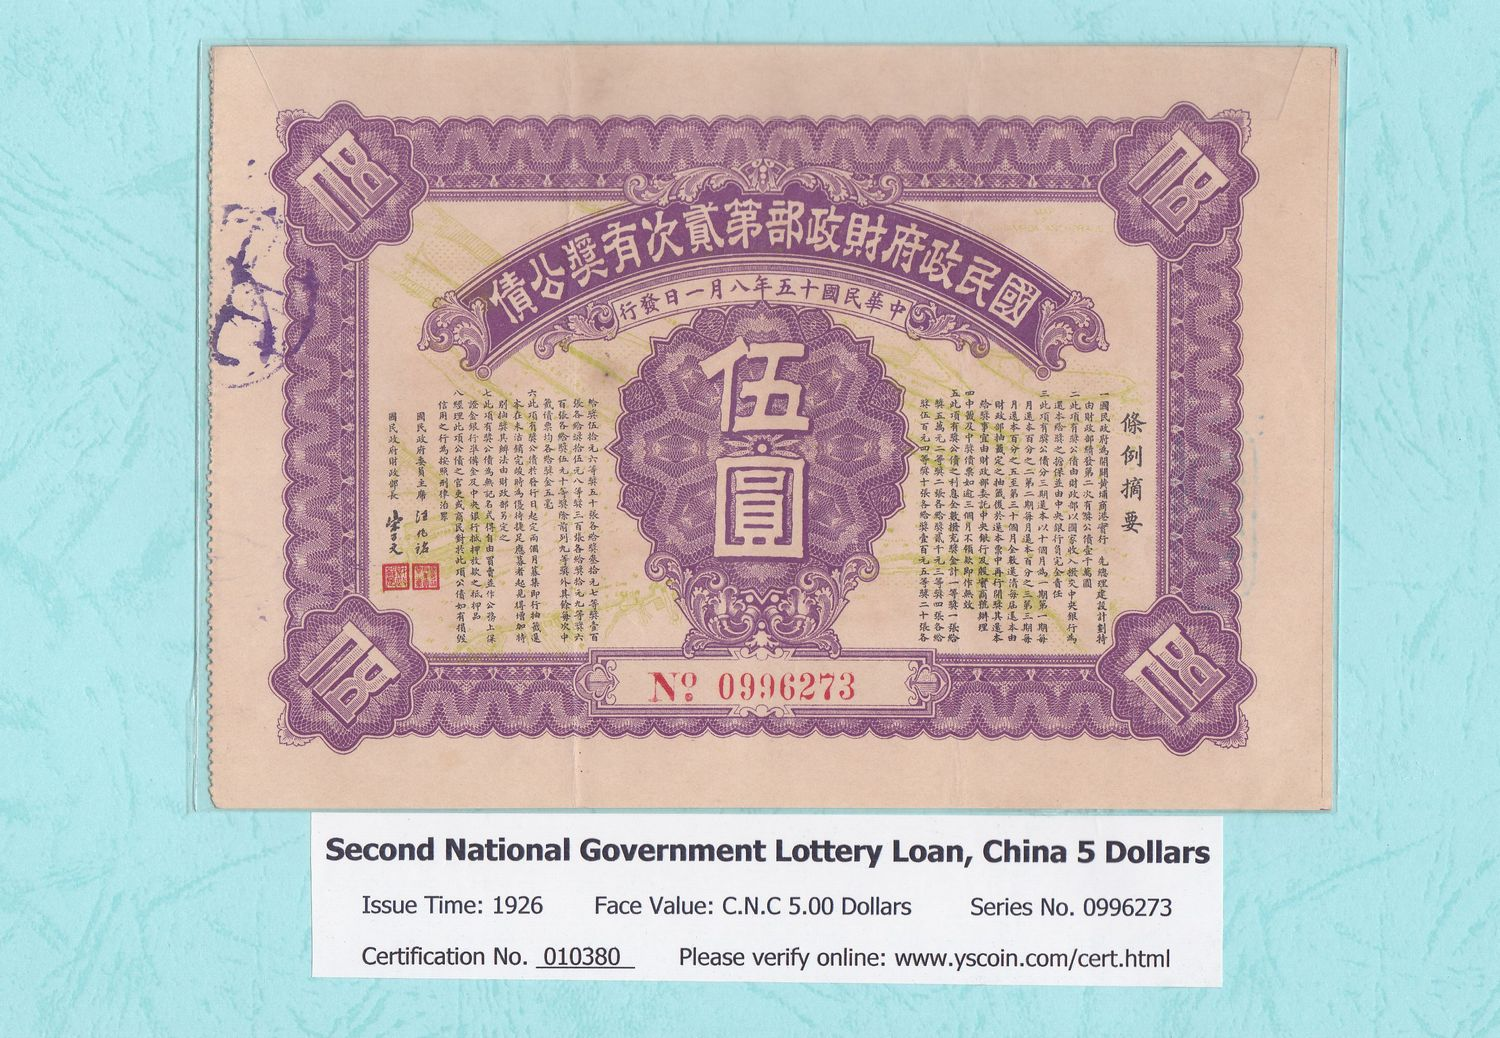 010380, Second National Government Lottery Loan, China 5 Dollars